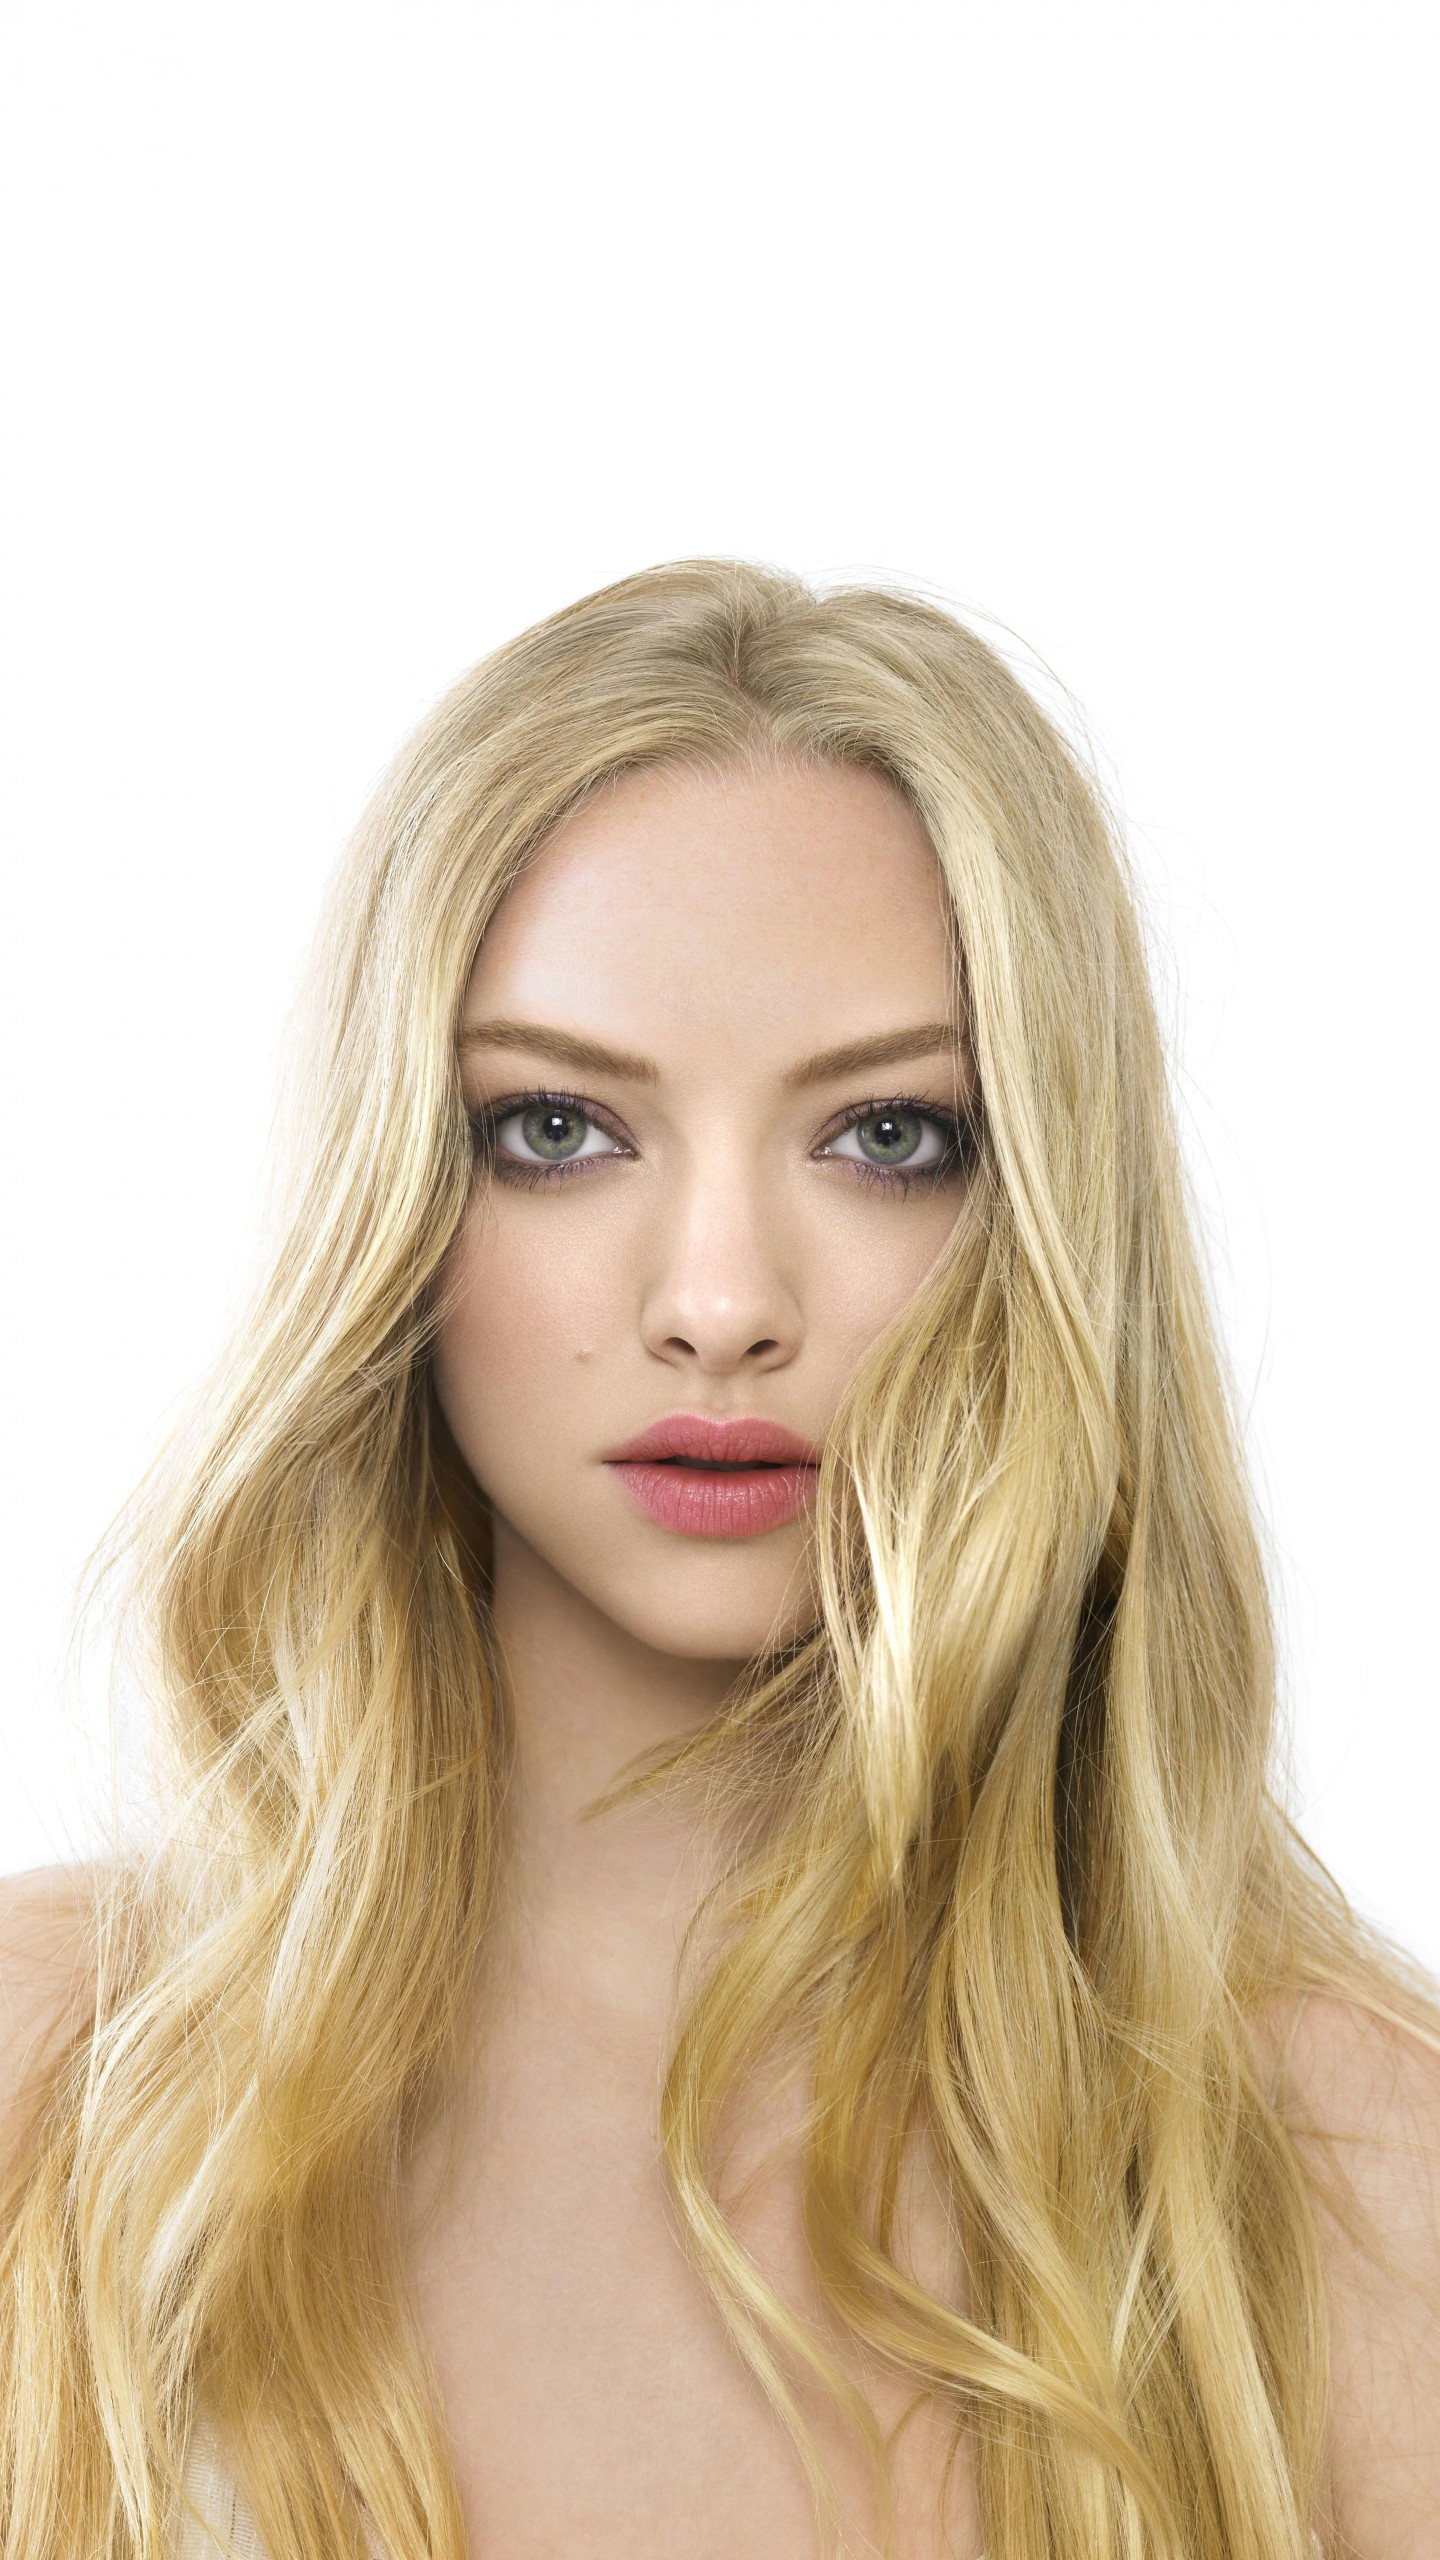 Amanda Seyfried Portrait Wallpaper for Google Nexus 6P